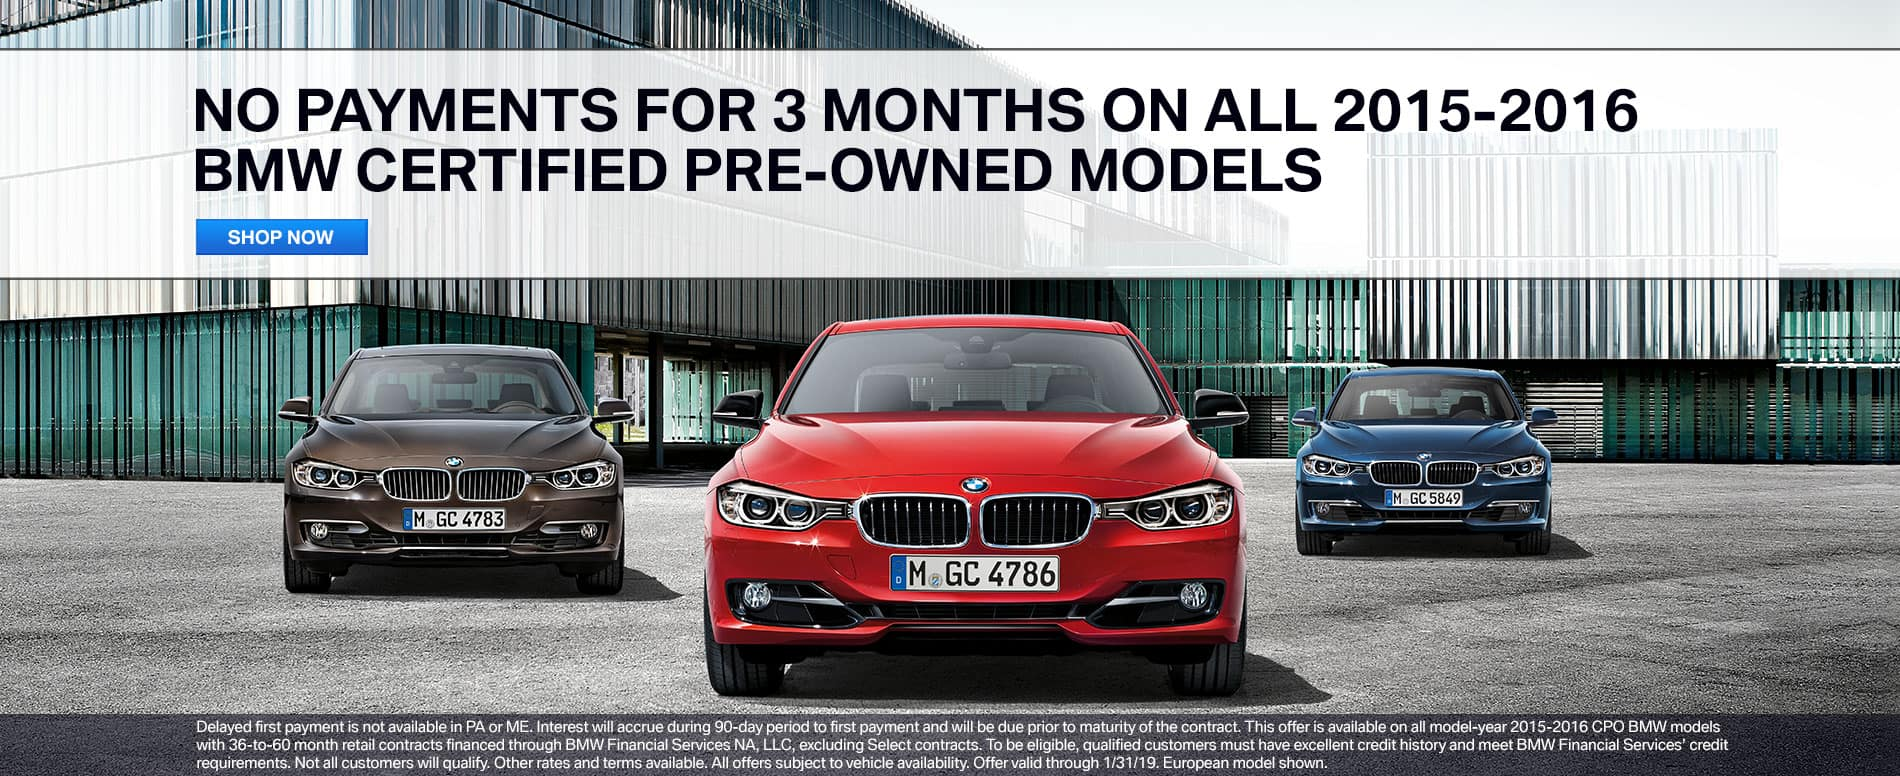 No Payments on 2015-2016 BMW CPO Models